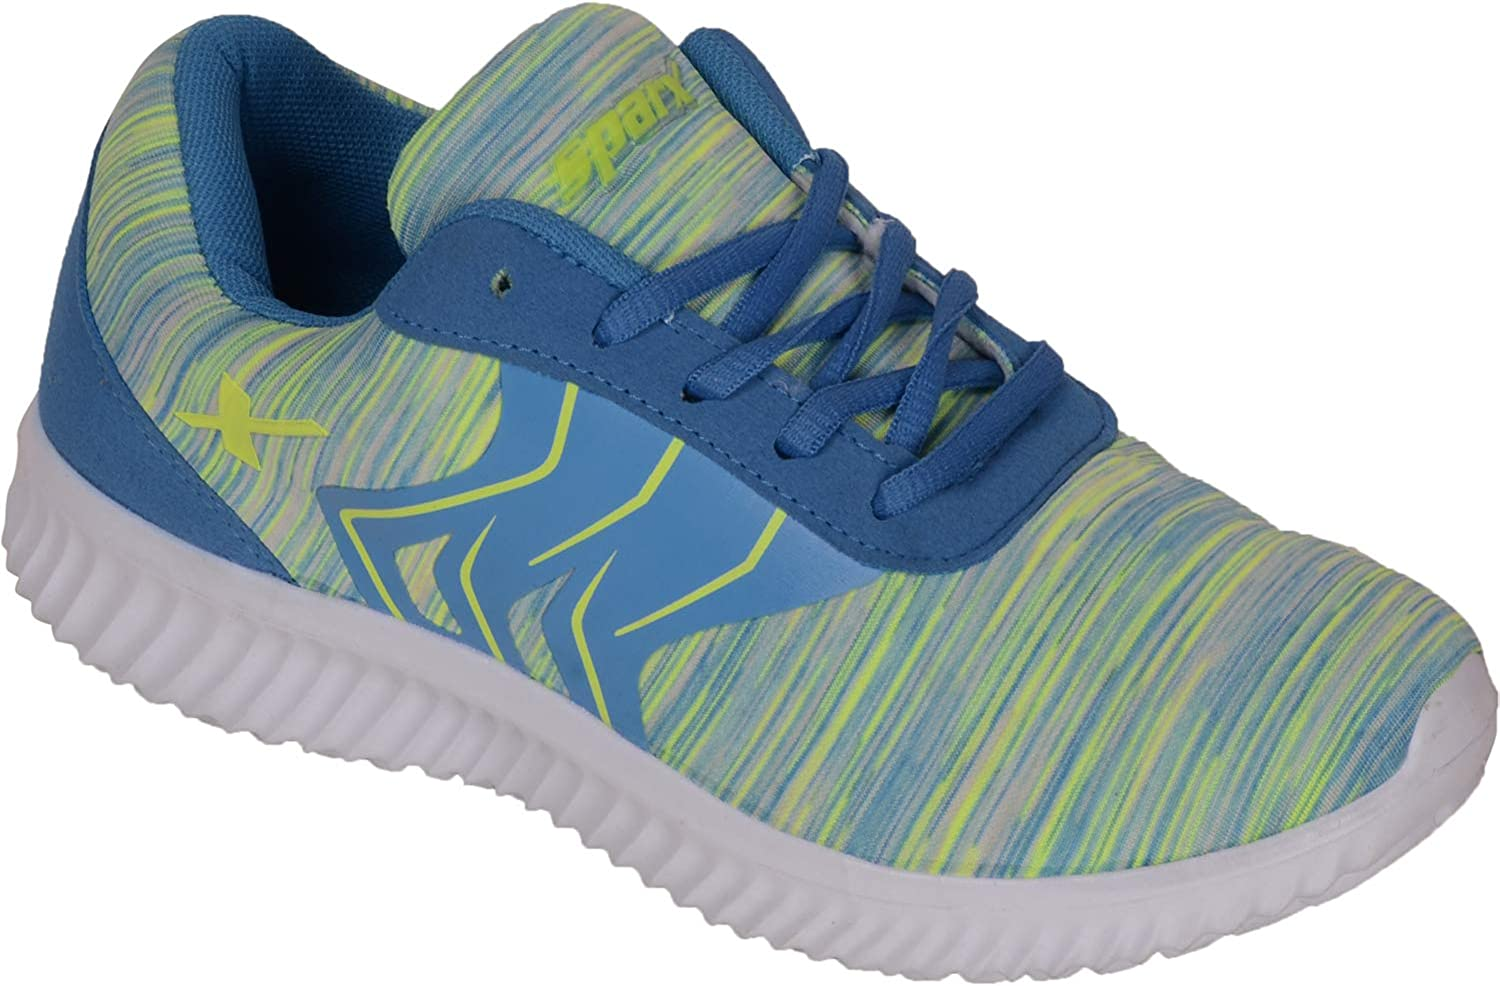 SPARX Women bluee White Running Sports shoes